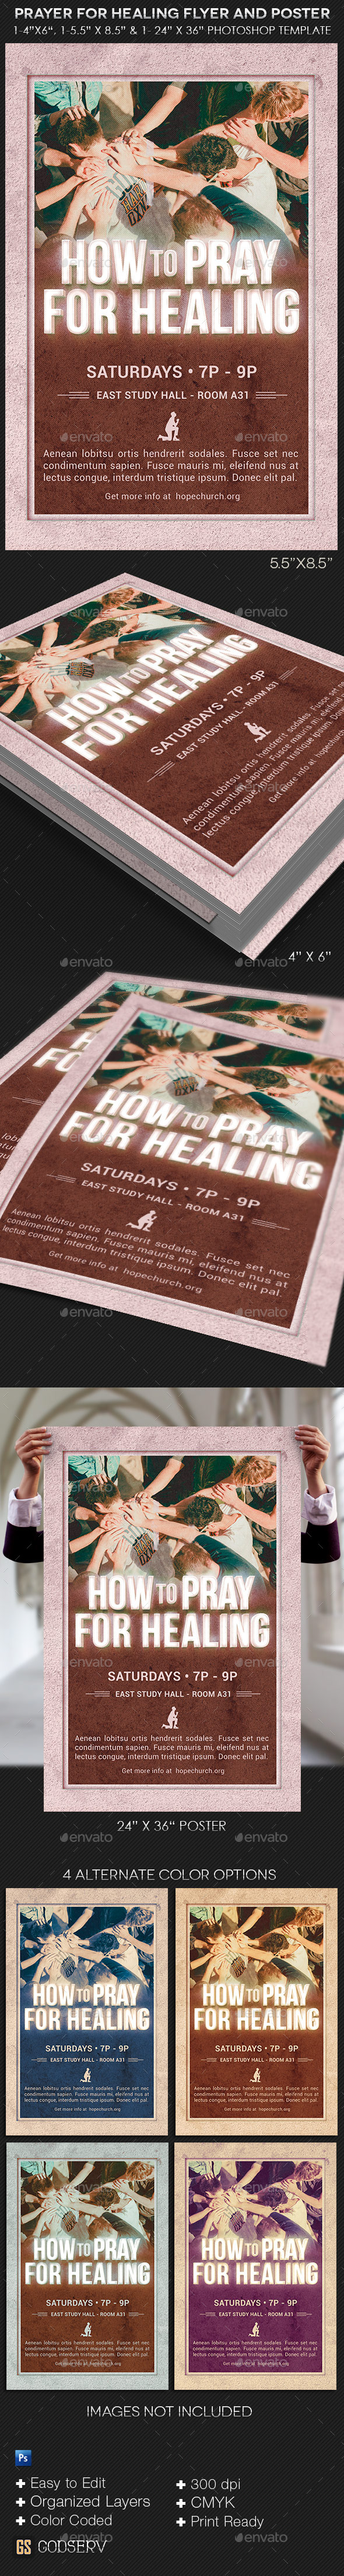 GraphicRiver Prayer for Healing Flyer and Poster Template 10868570